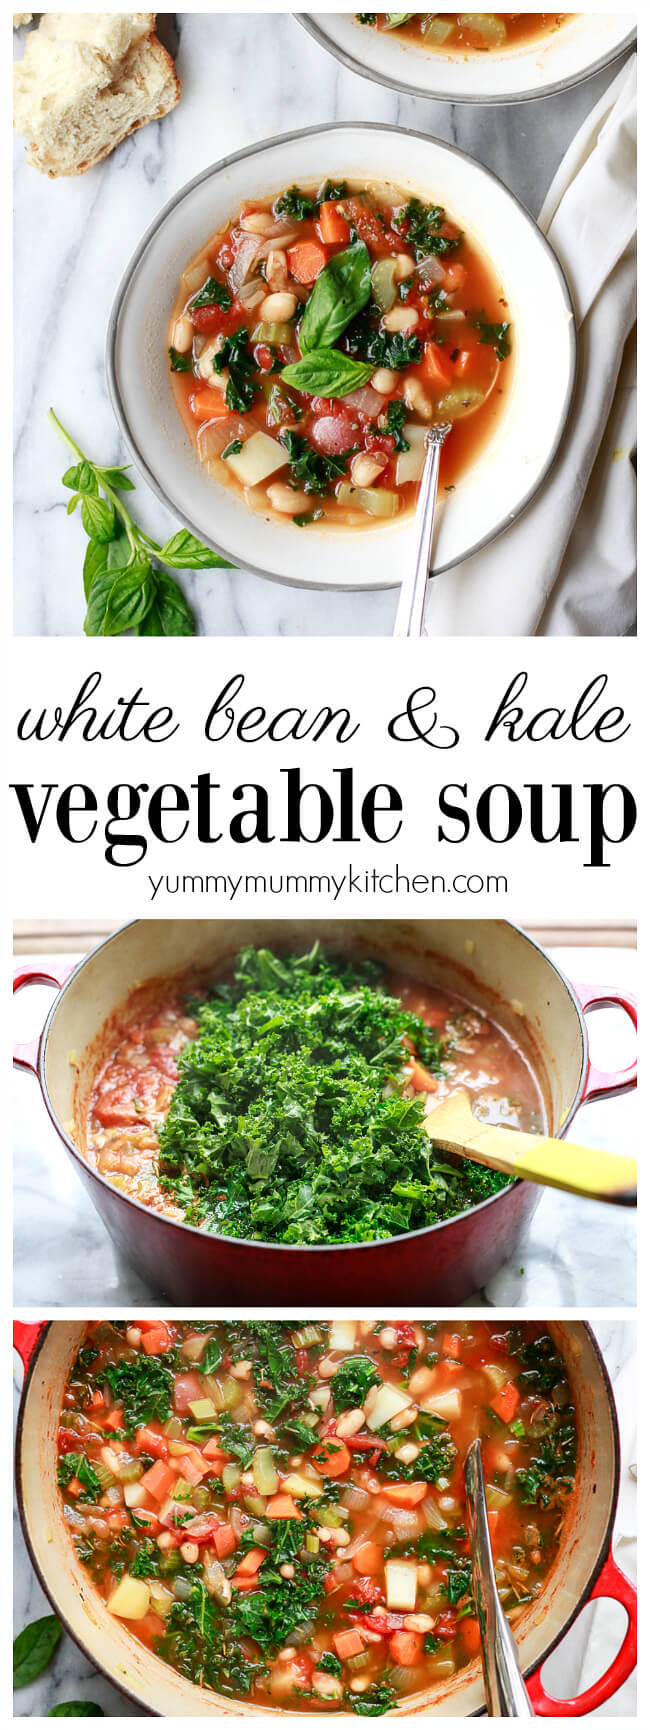 A hearty and healthy winter white bean and kale vegetable soup. White bean and kale soup is a lunch or dinner that's plant-based, vegetarian and vegan.